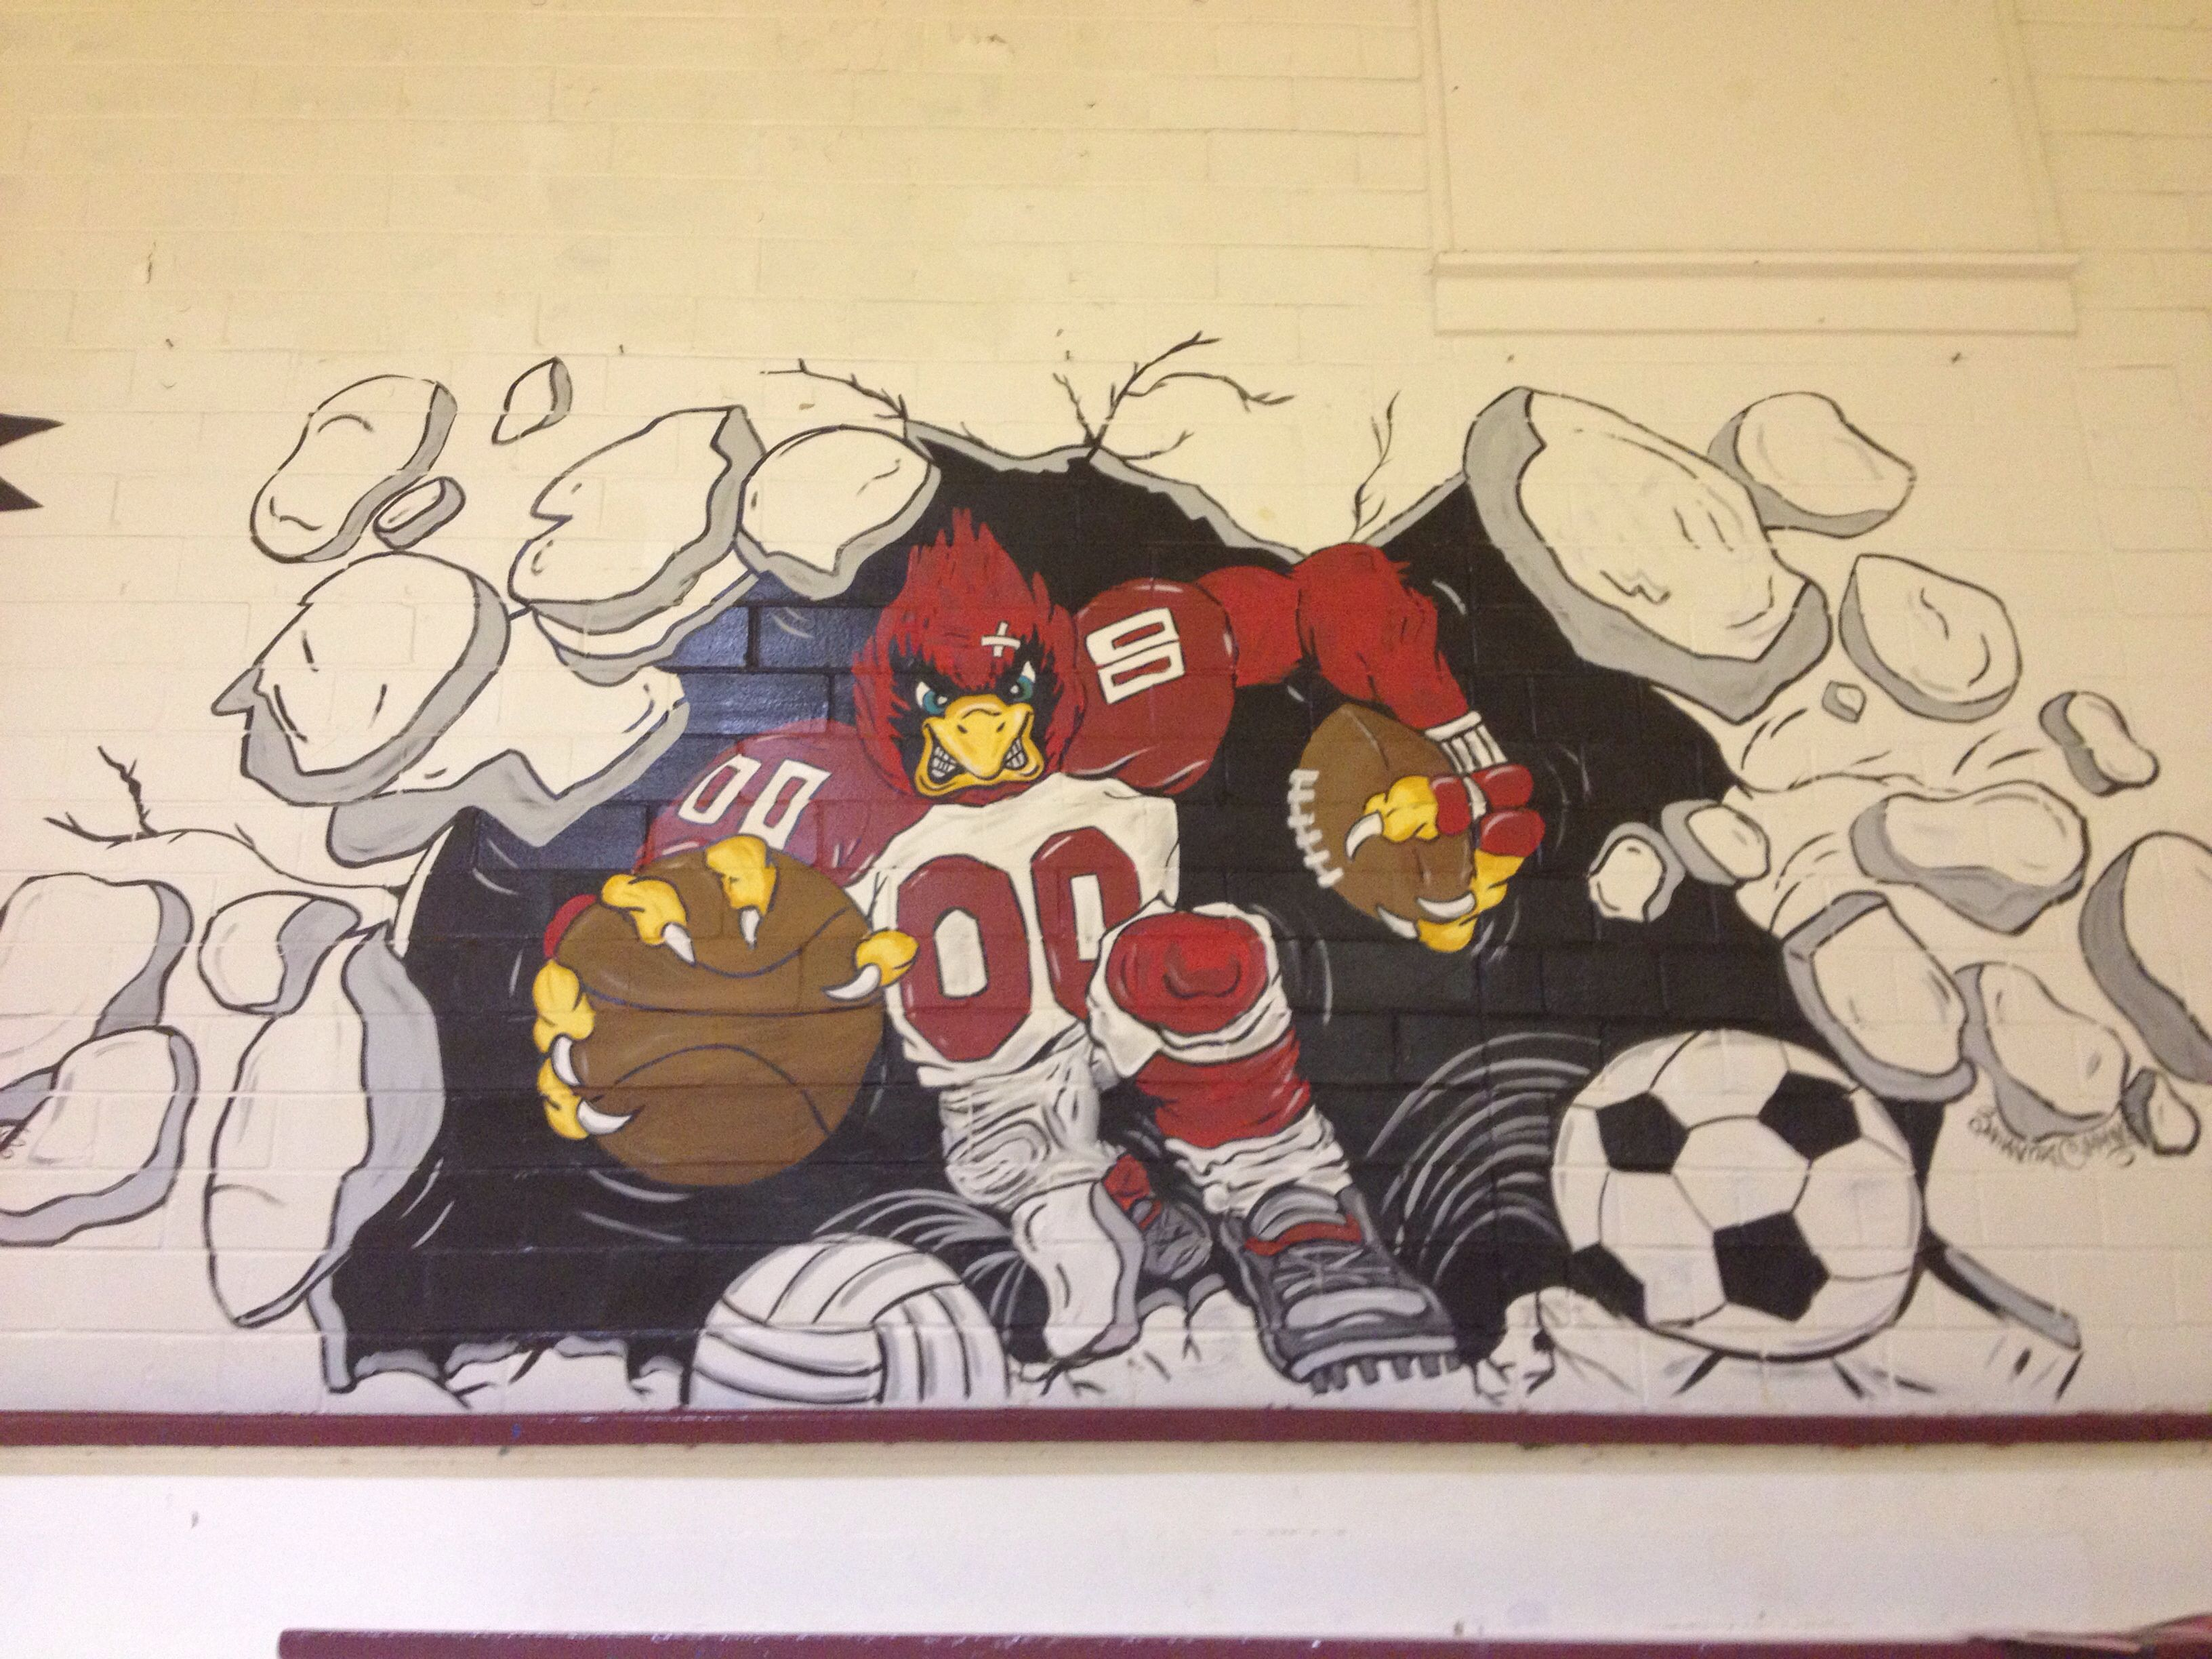 I Painted This Cardinal Mascot Mural In The Gym At My School School Murals Art Lesson Plans